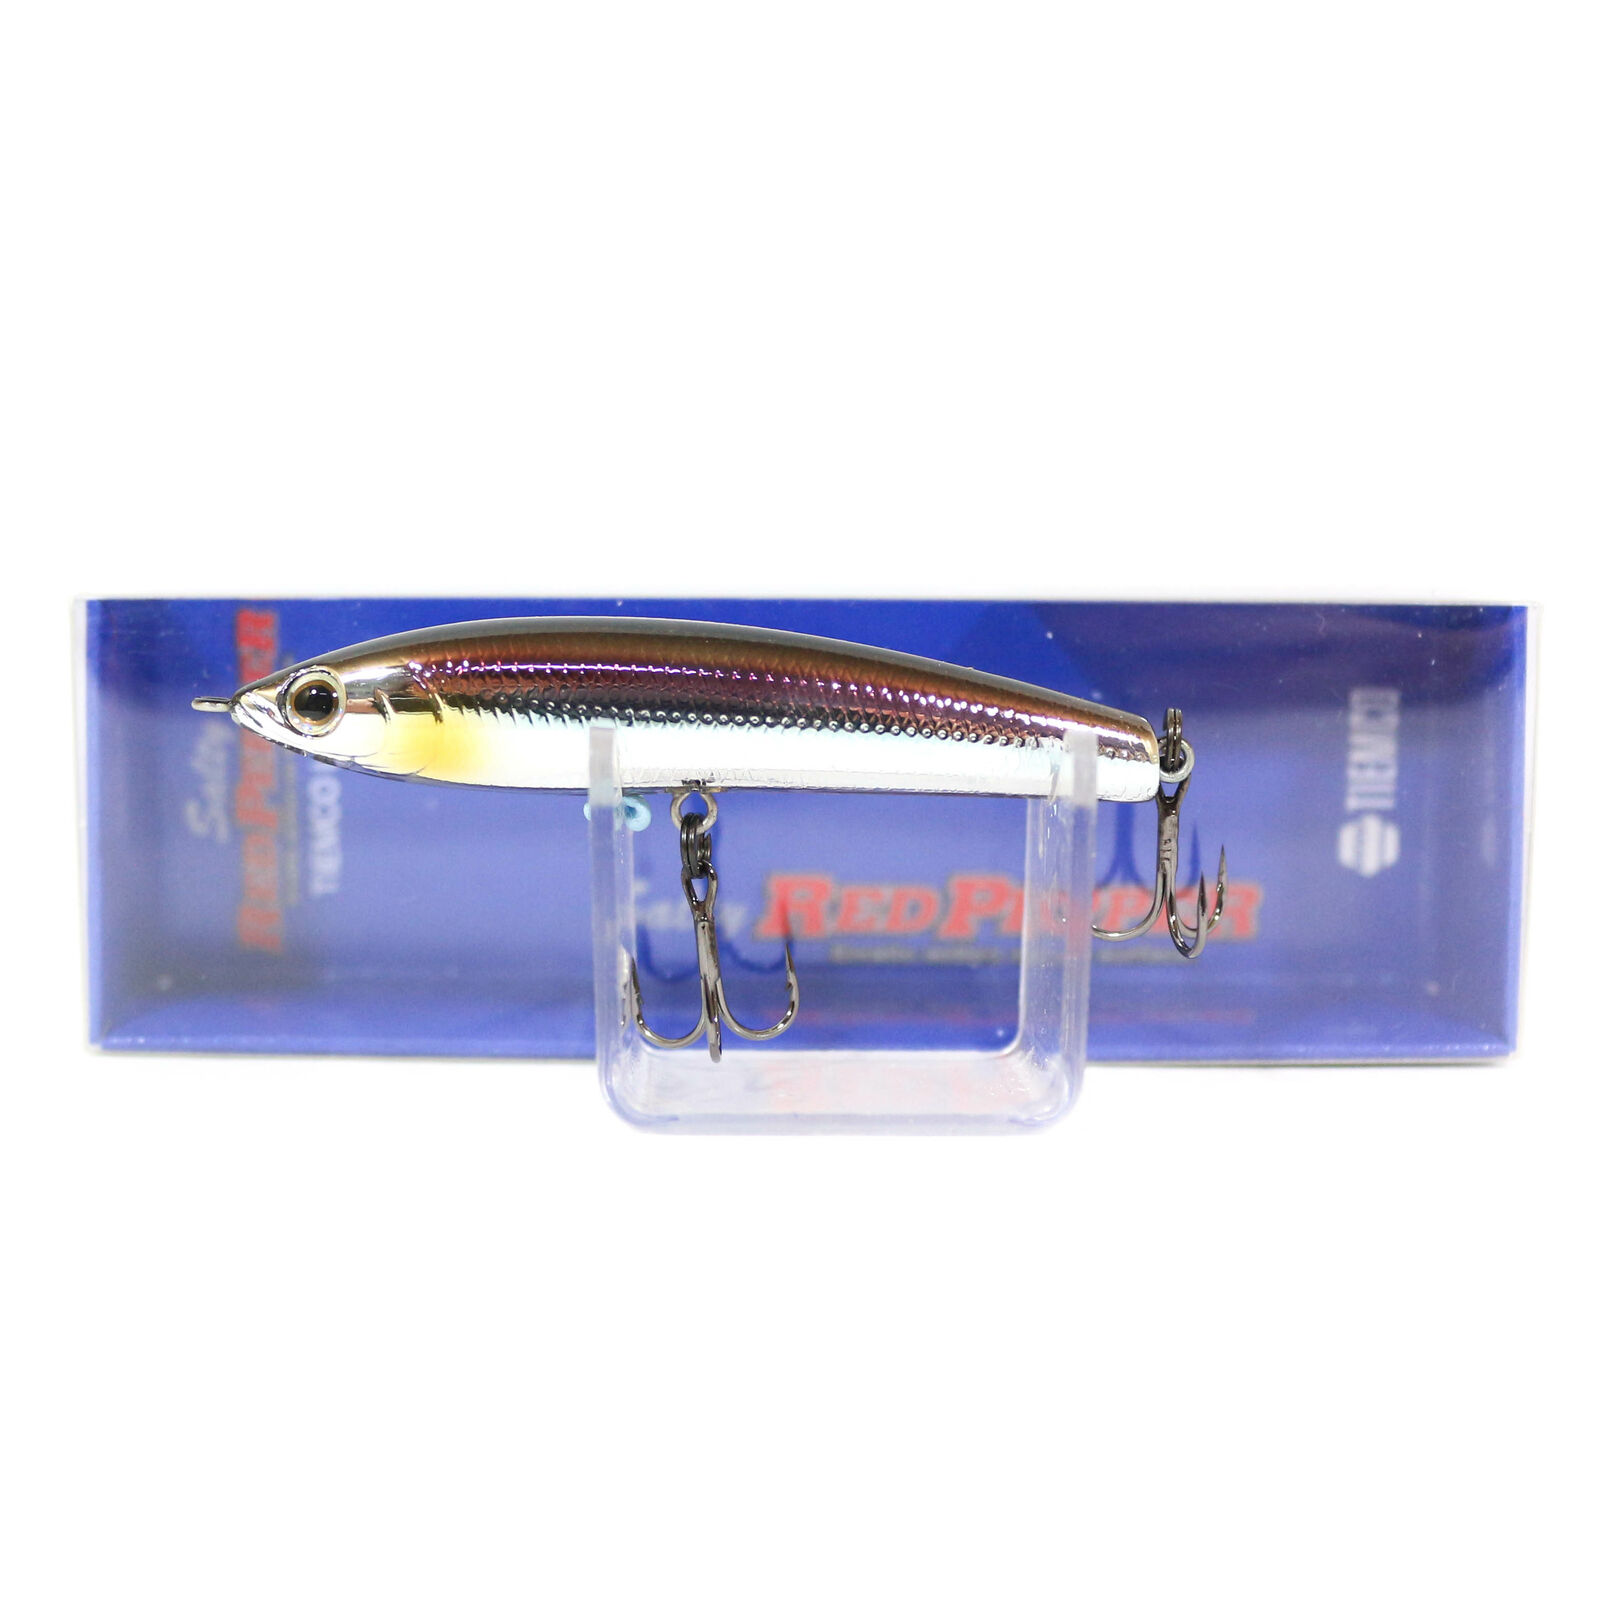 3566 Details about  /Tiemco Red Pepper Baby Lipless Minnow Leurre RPB-512